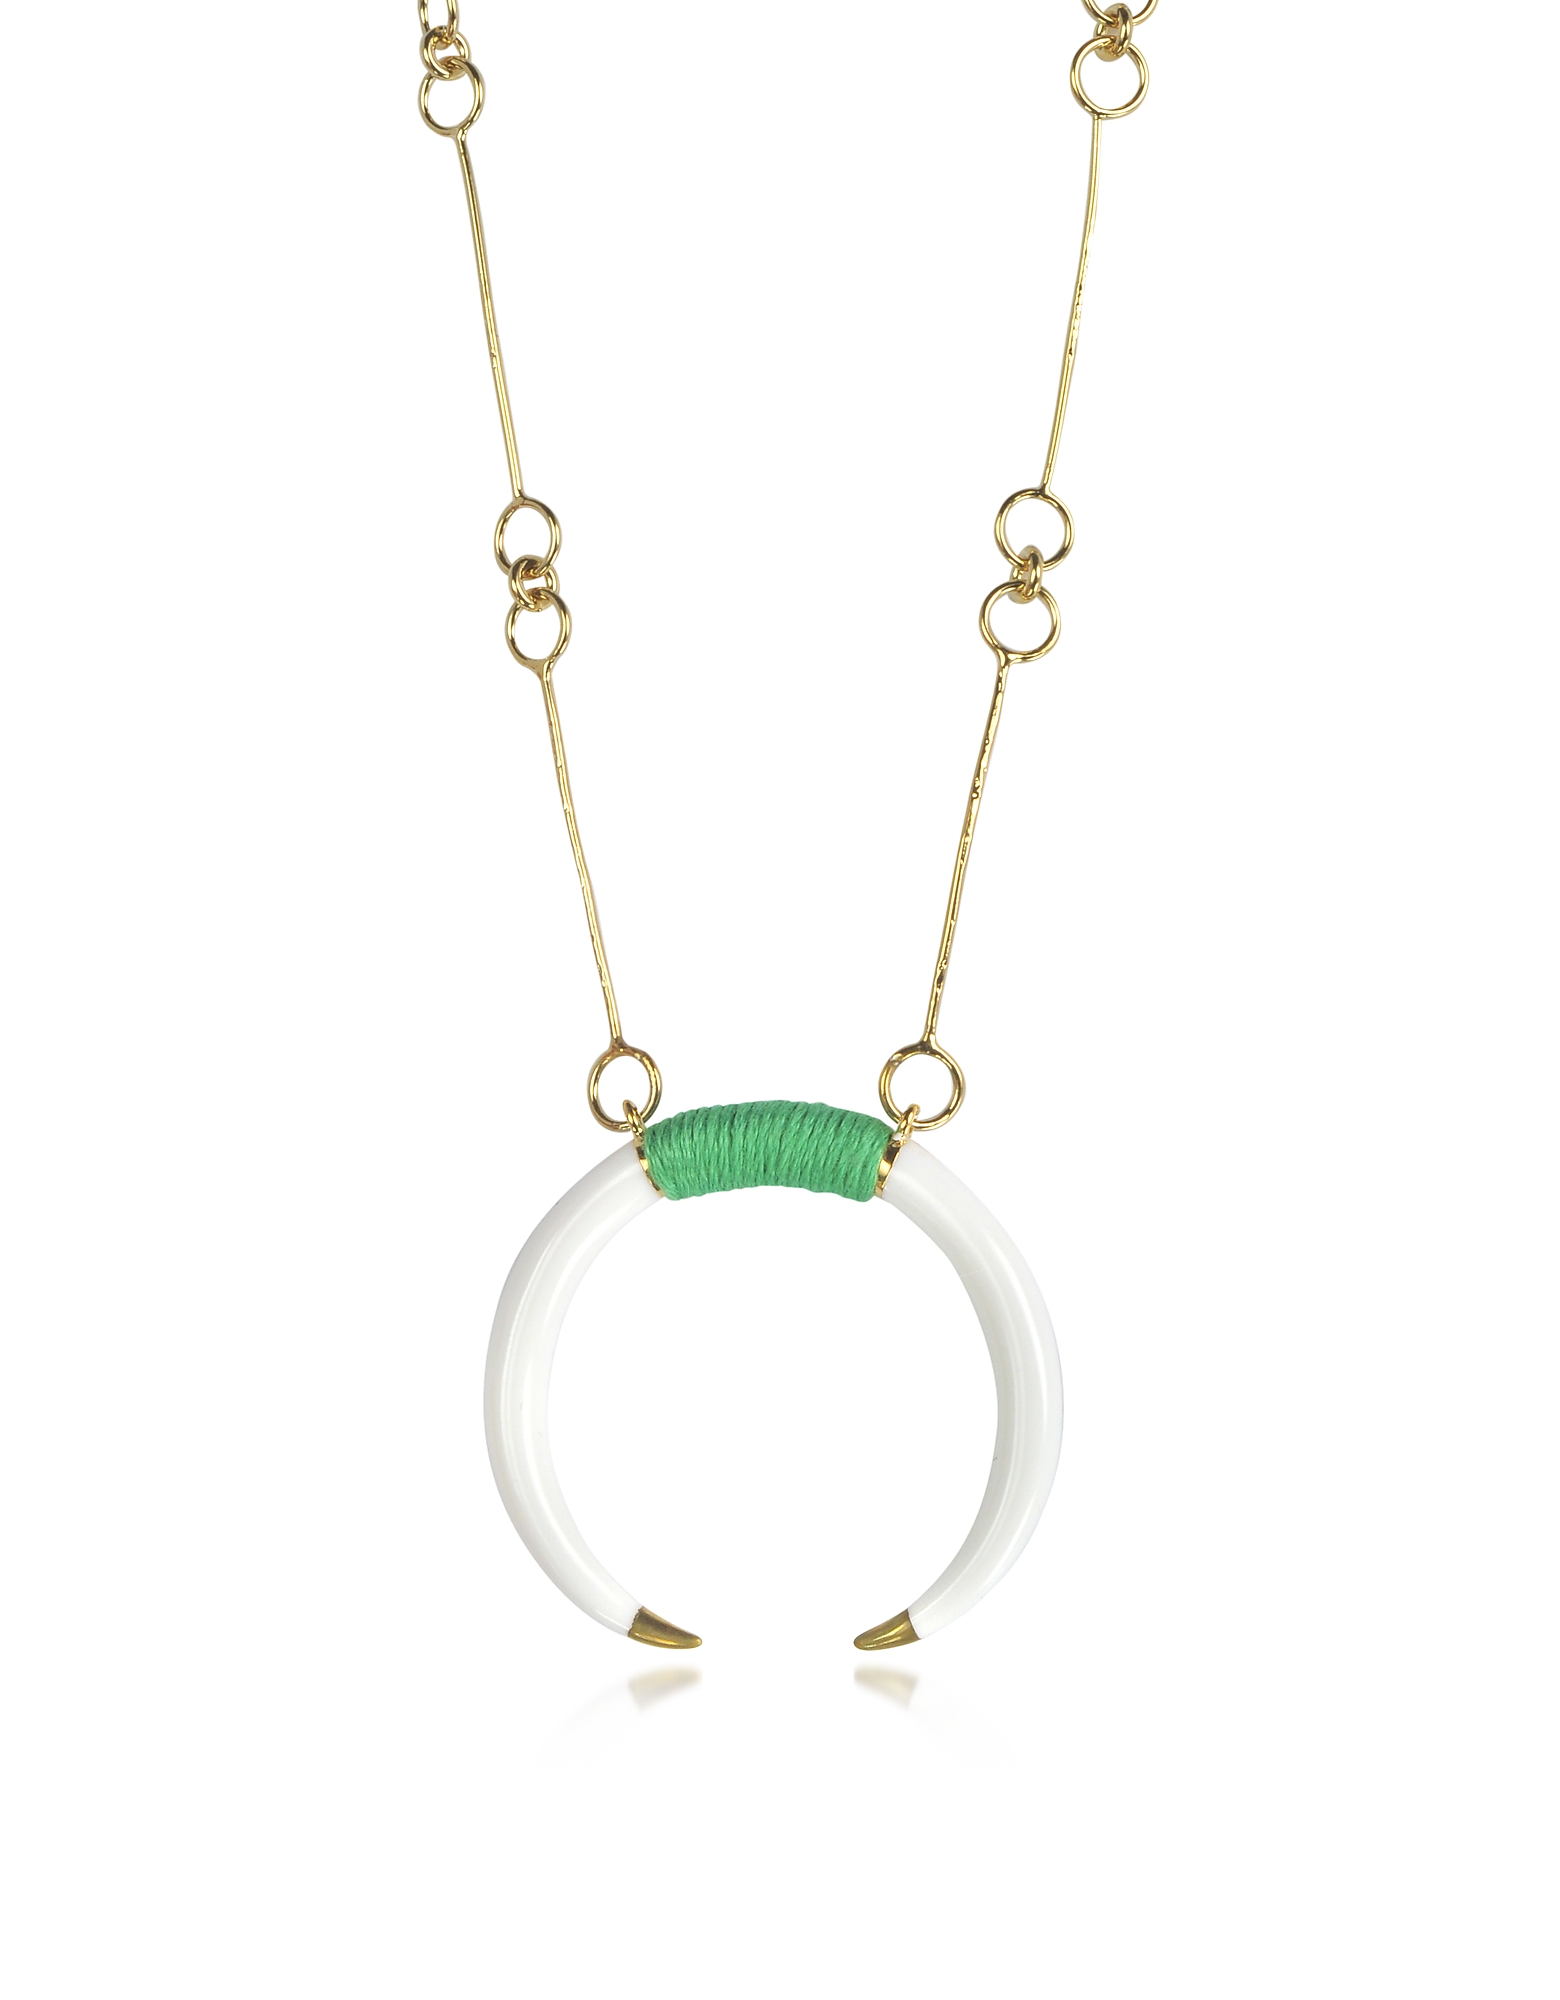 Aurelie Bidermann Necklaces, 18K Gold-Plated Brass and White Resin Horn Pendant Necklace